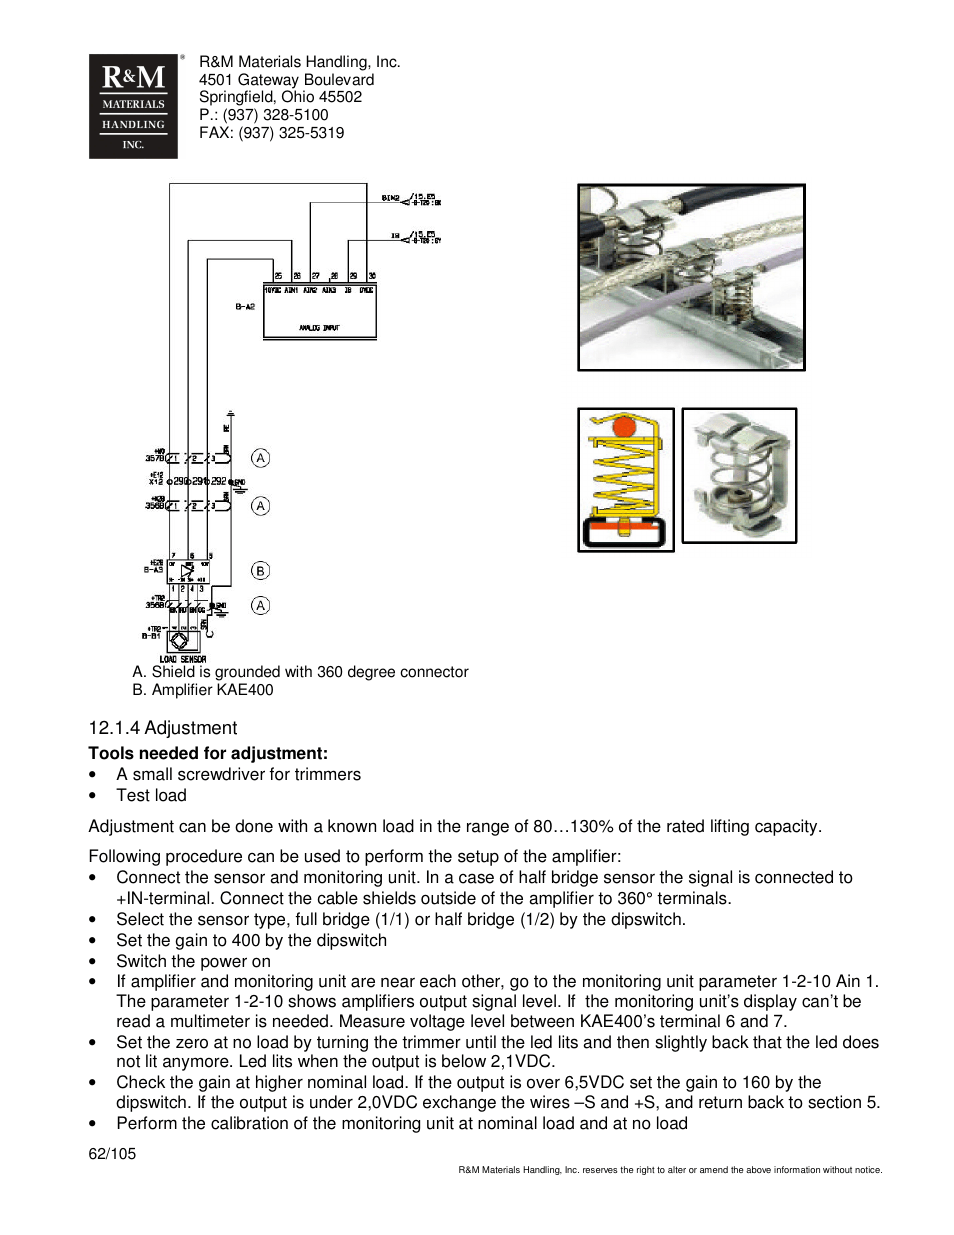 hight resolution of r m materials handling hoist monitors user manual page 62 105 r amp m hoist wiring diagram